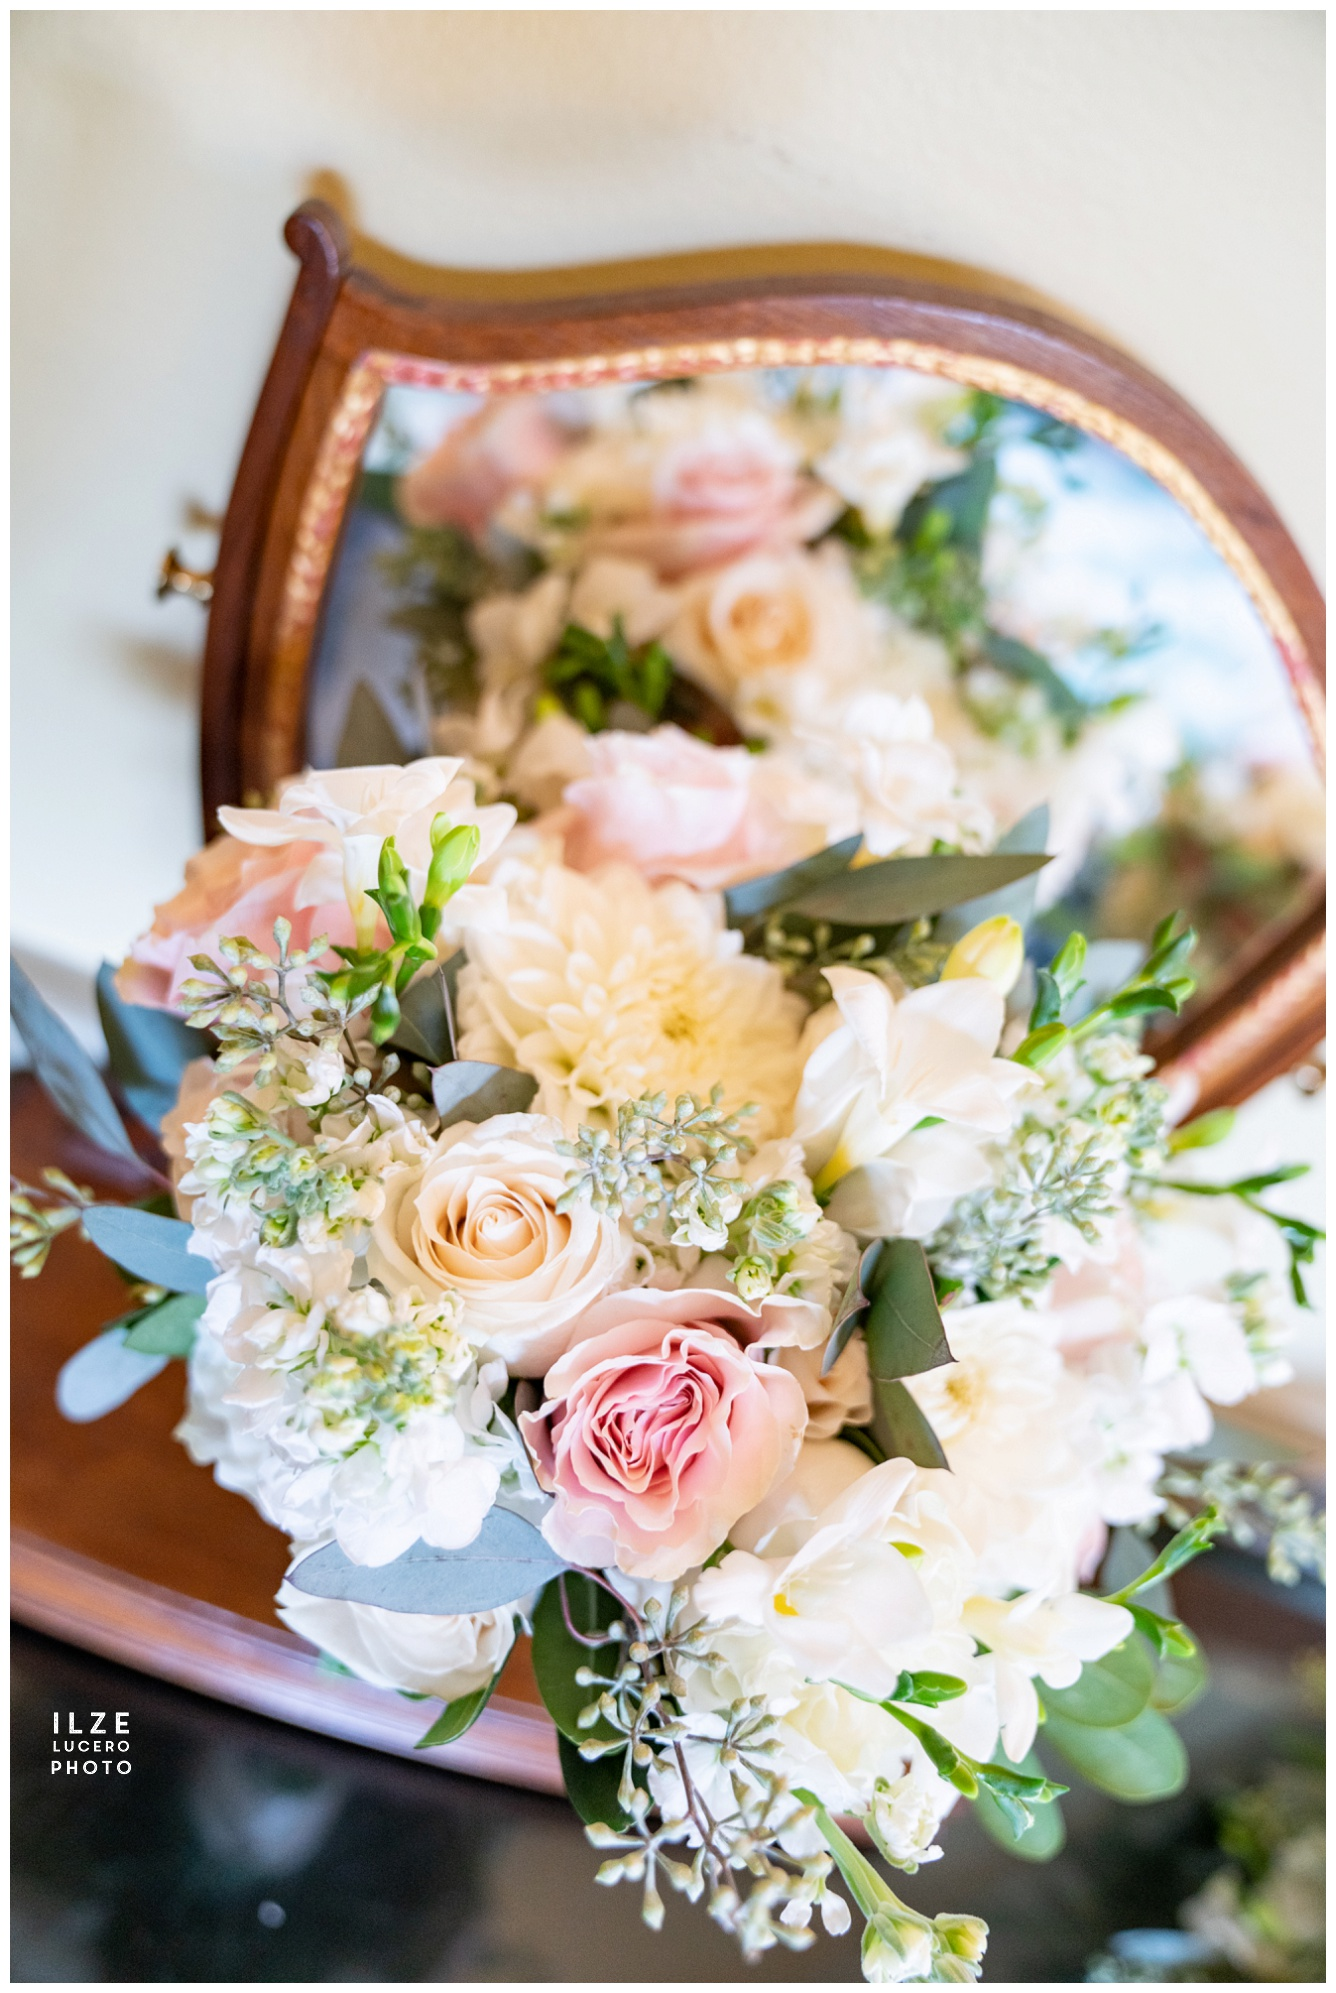 Modern wedding flowers- roses, dahlias and fresias